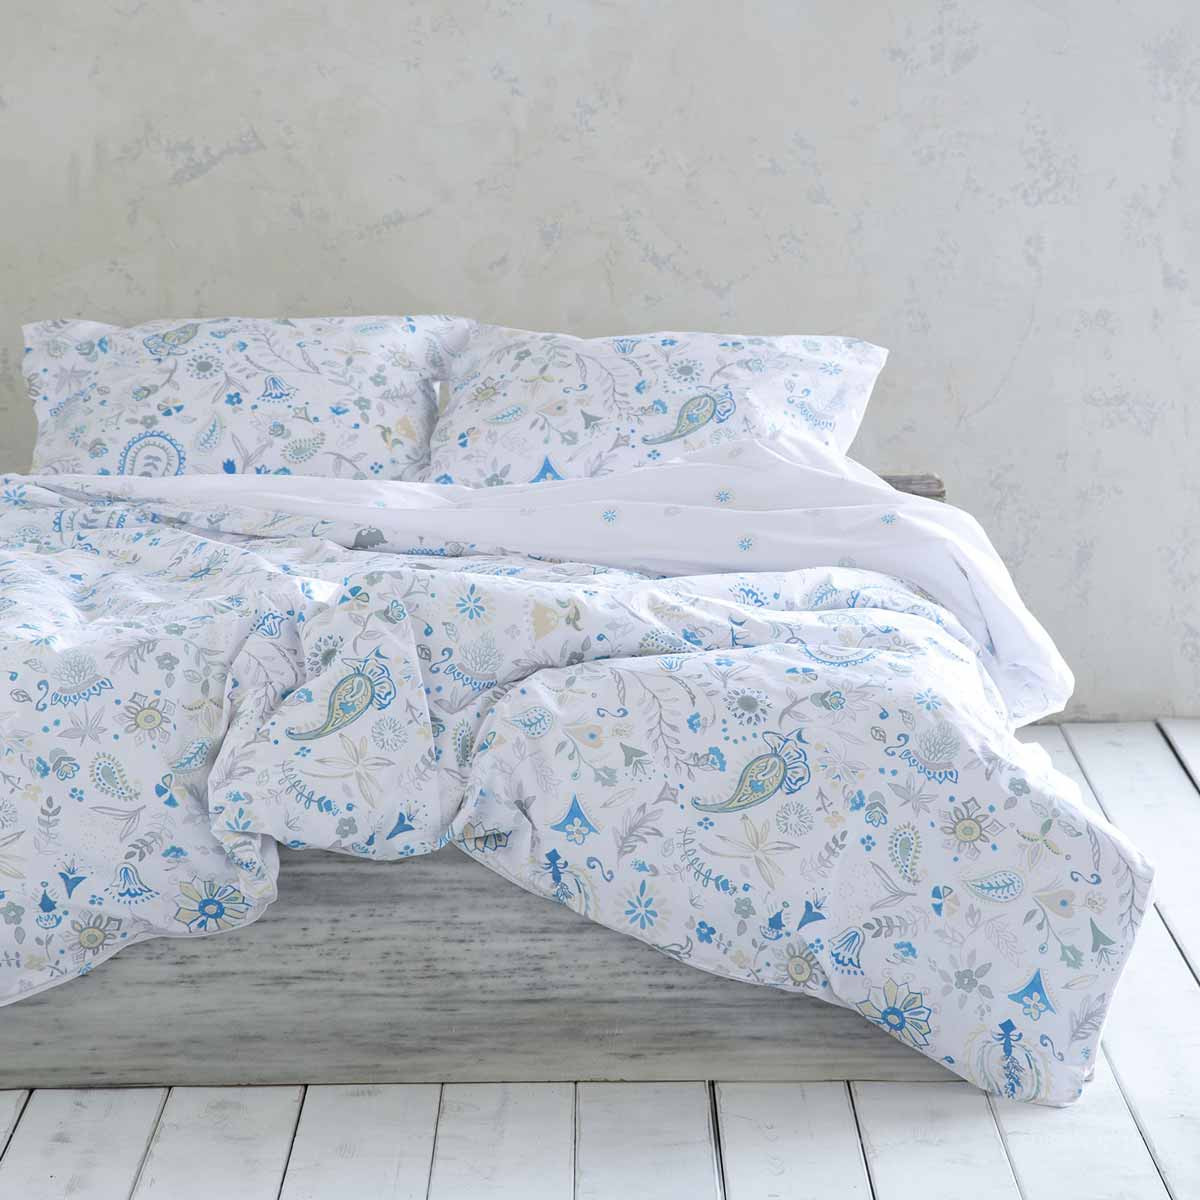 Σεντόνια King Size (Σετ) Nima Bed Linen Desire Blue